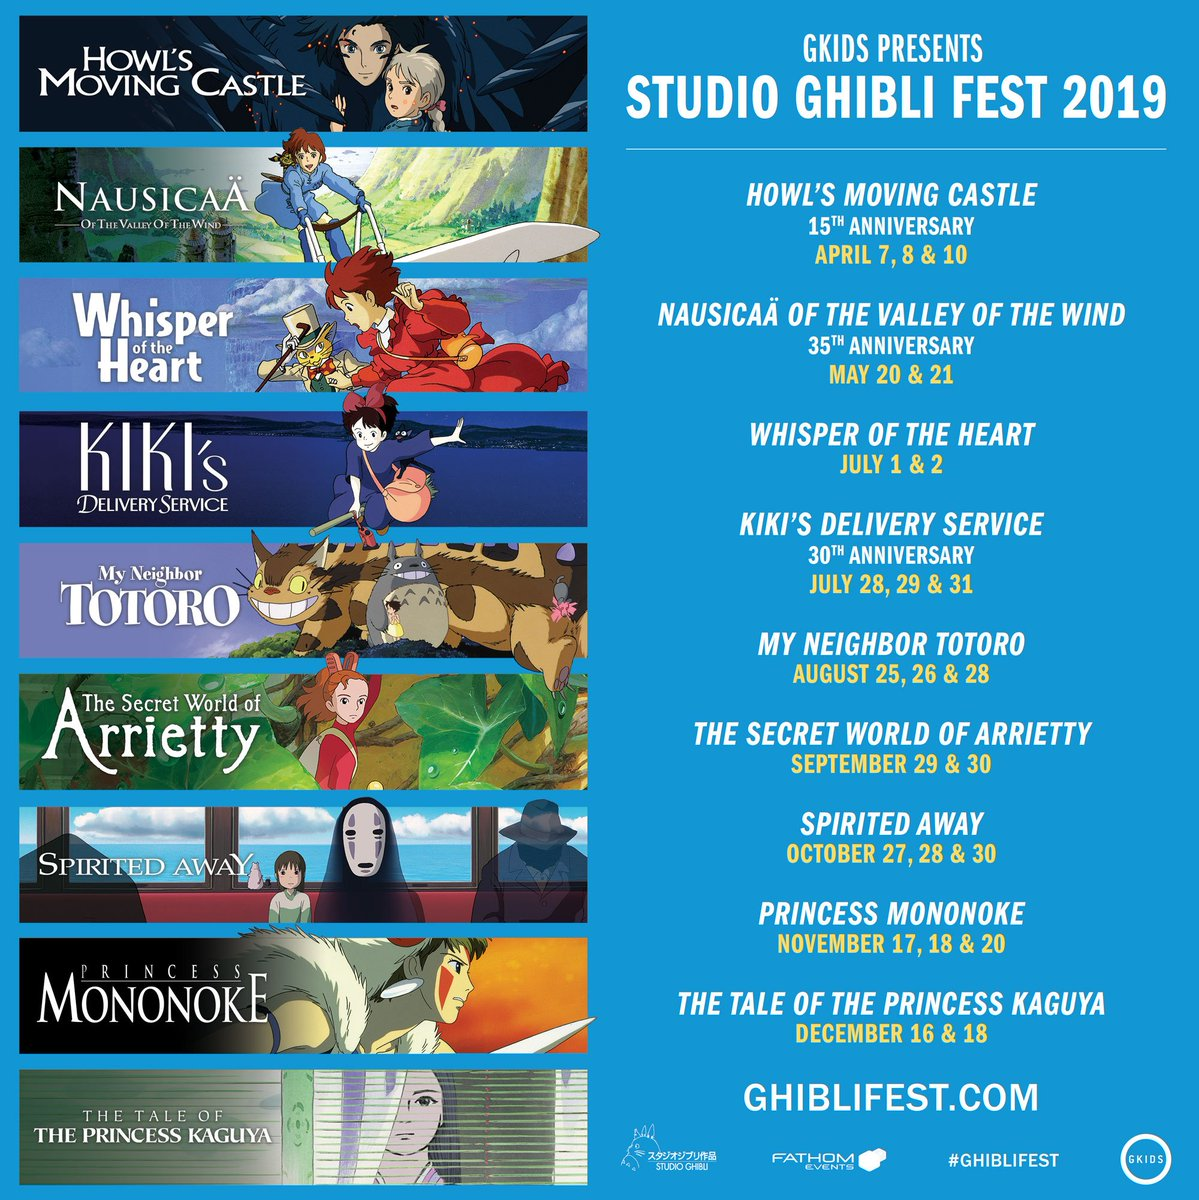 ✨STUDIO GHIBLI FEST IS BACK!✨ Studio #Ghibli Fest 2019 will bring 9 beloved films into select theaters nationwide from April to December in both English and Japanese versions.   Mark your calendars! Tickets go on sale on 3/7. http://GhibliFest.com #GhibliFest #StudioGhibli